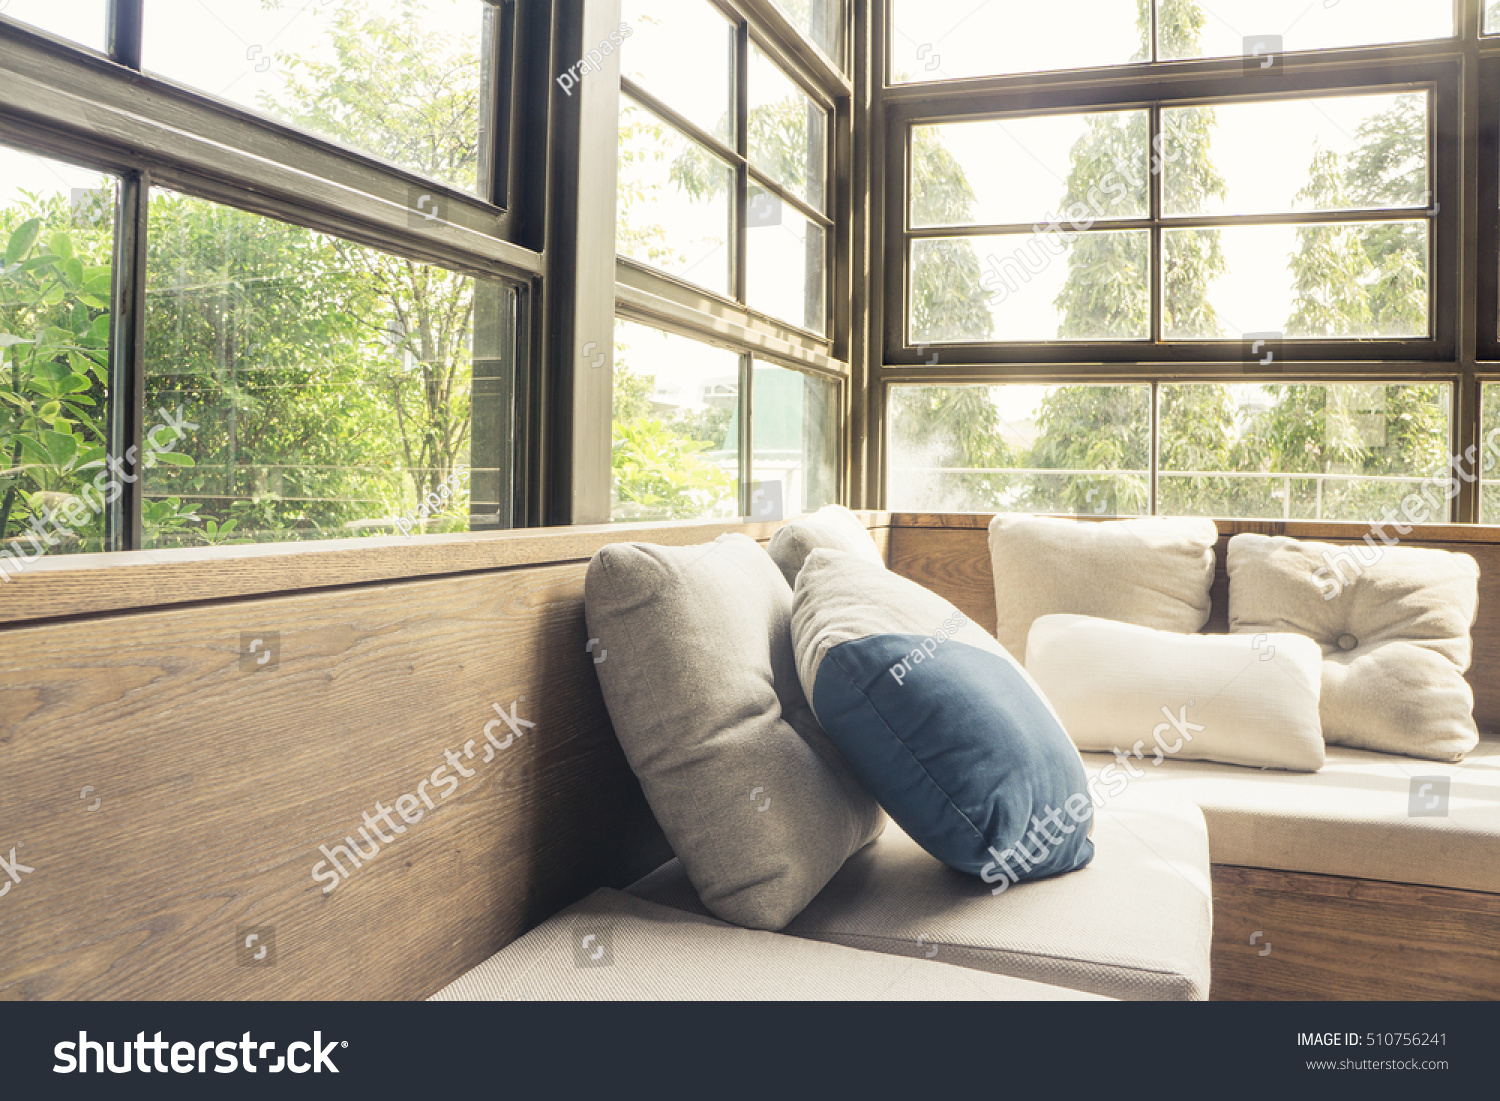 big living room couches decorate large rectangular cozy modern sofa couch stock photo edit now 510756241 corner with glass window interior background